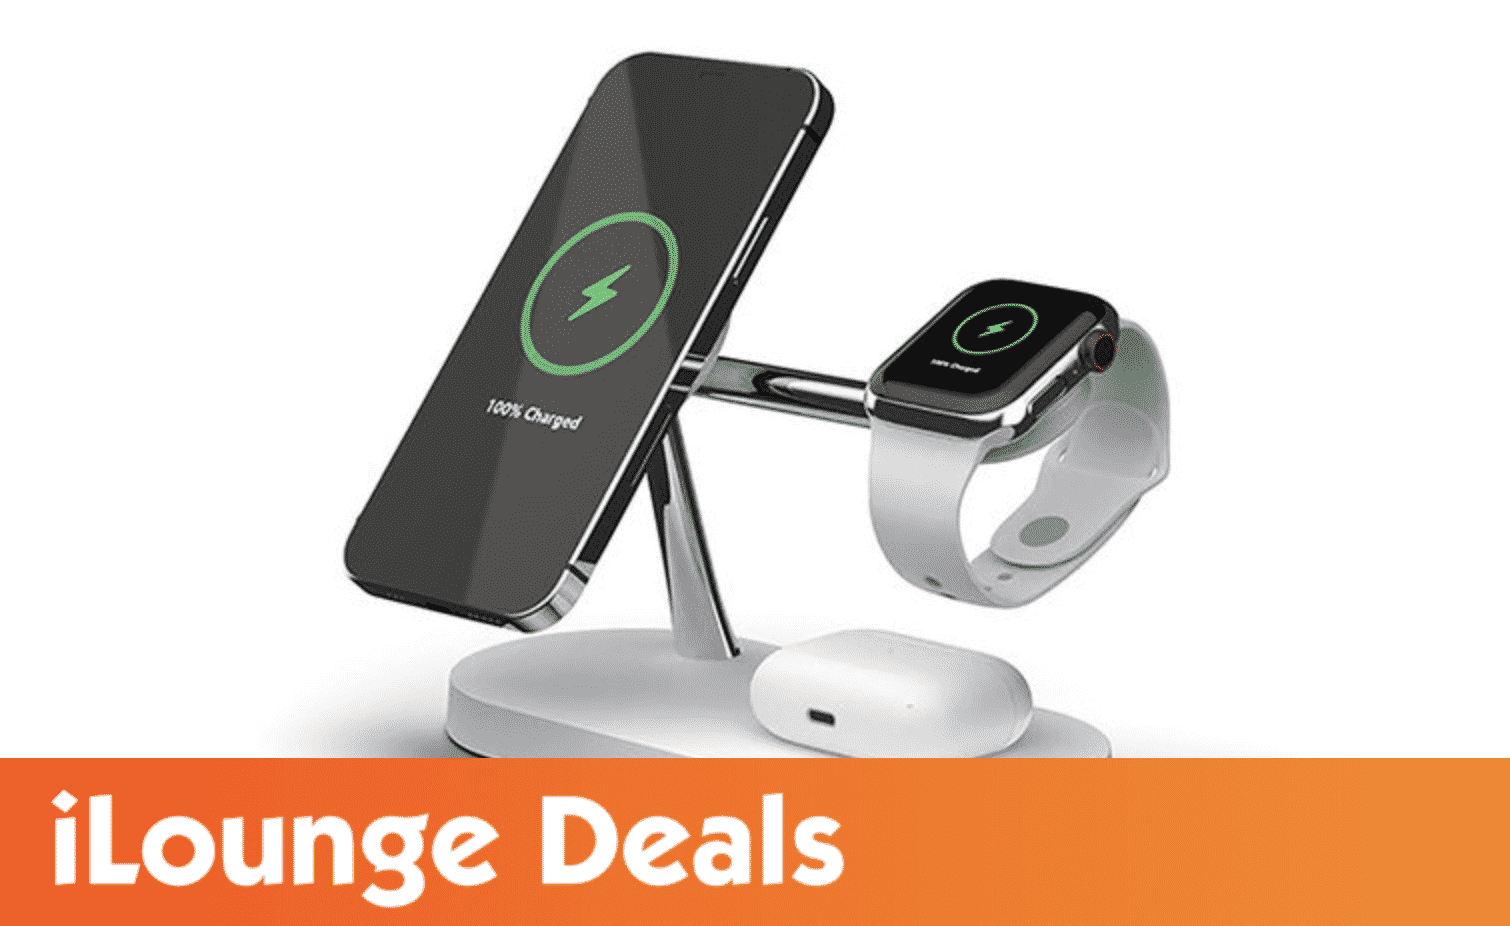 5-in-1 MagSafe Wireless & Wired Charging Station